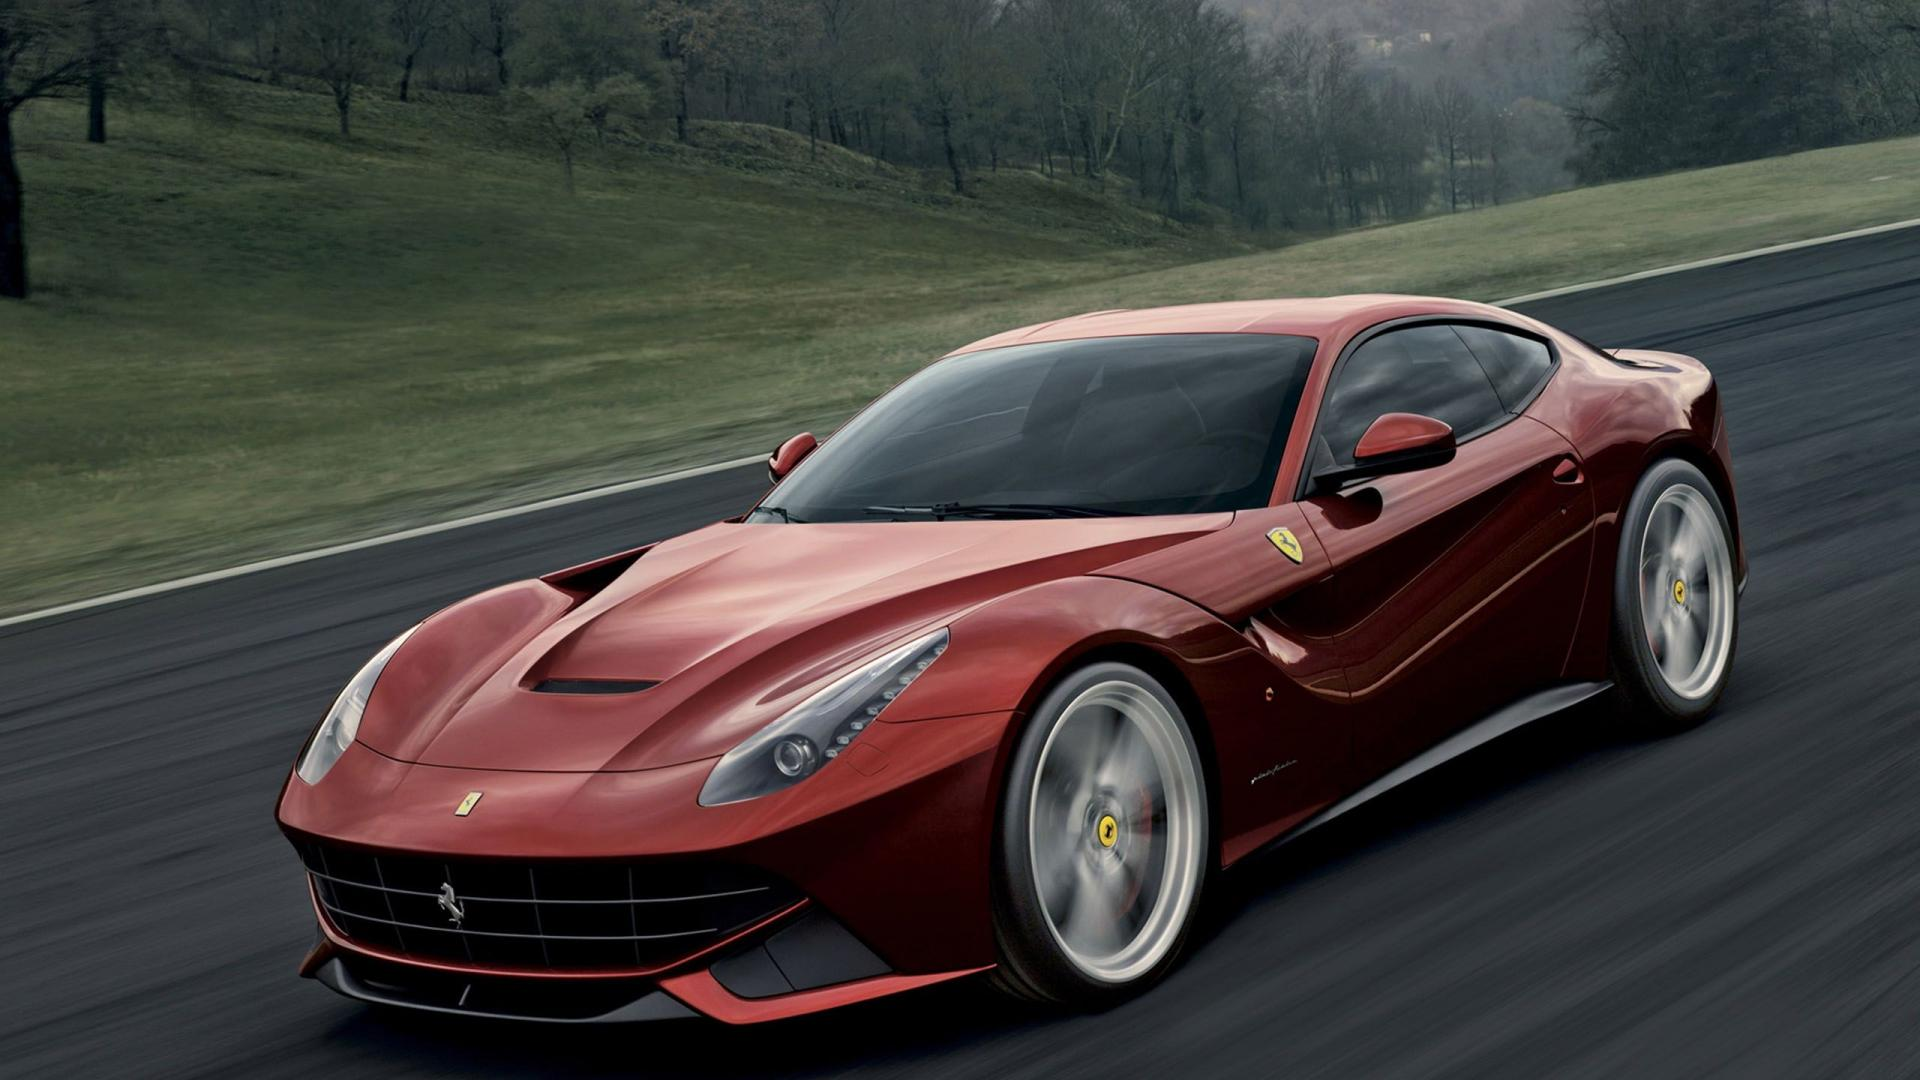 Ferrari F12 Berlinetta Sports Cars HD Wallpaper | Wallpapers55.